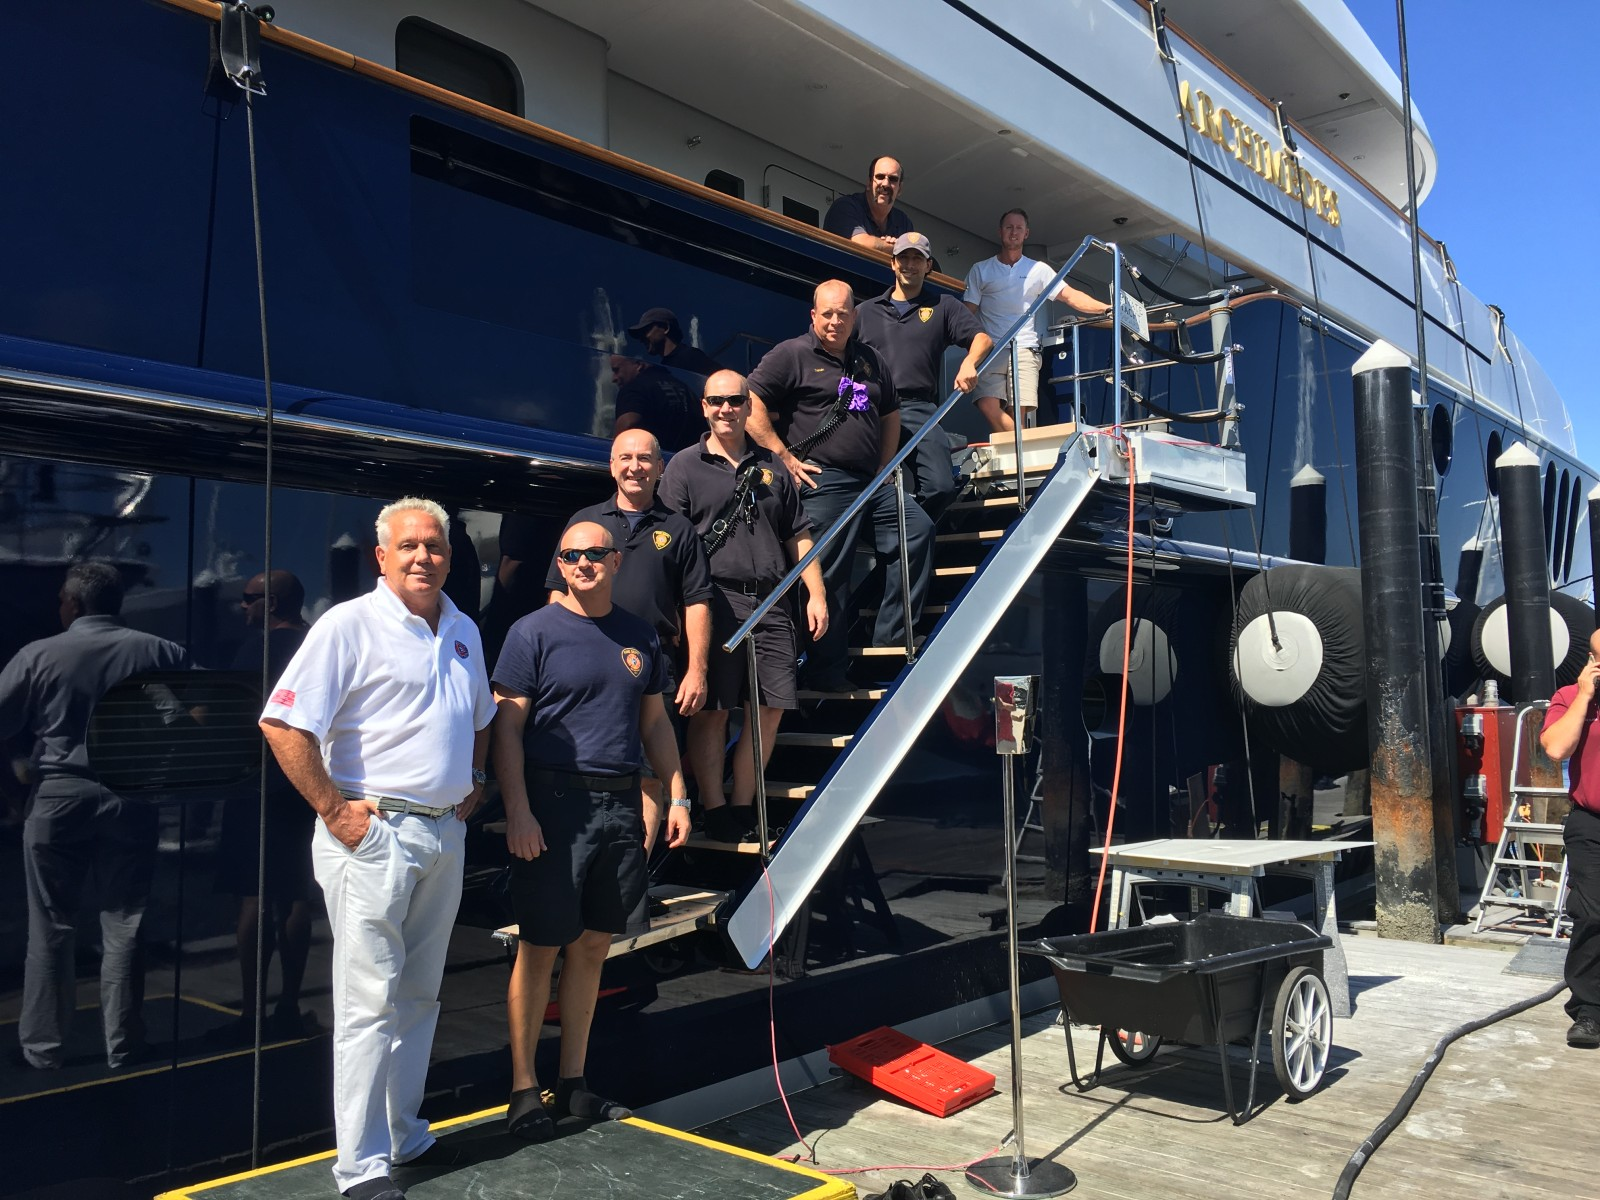 Bosun Max Haynes (at top of gangway) leads firefighters from the Newport Rhode Island Fire Department through M/Y Archimedes at Newport Shipyard in September. PHOTOS FROM AIG PRIVATE CLIENT GROUP